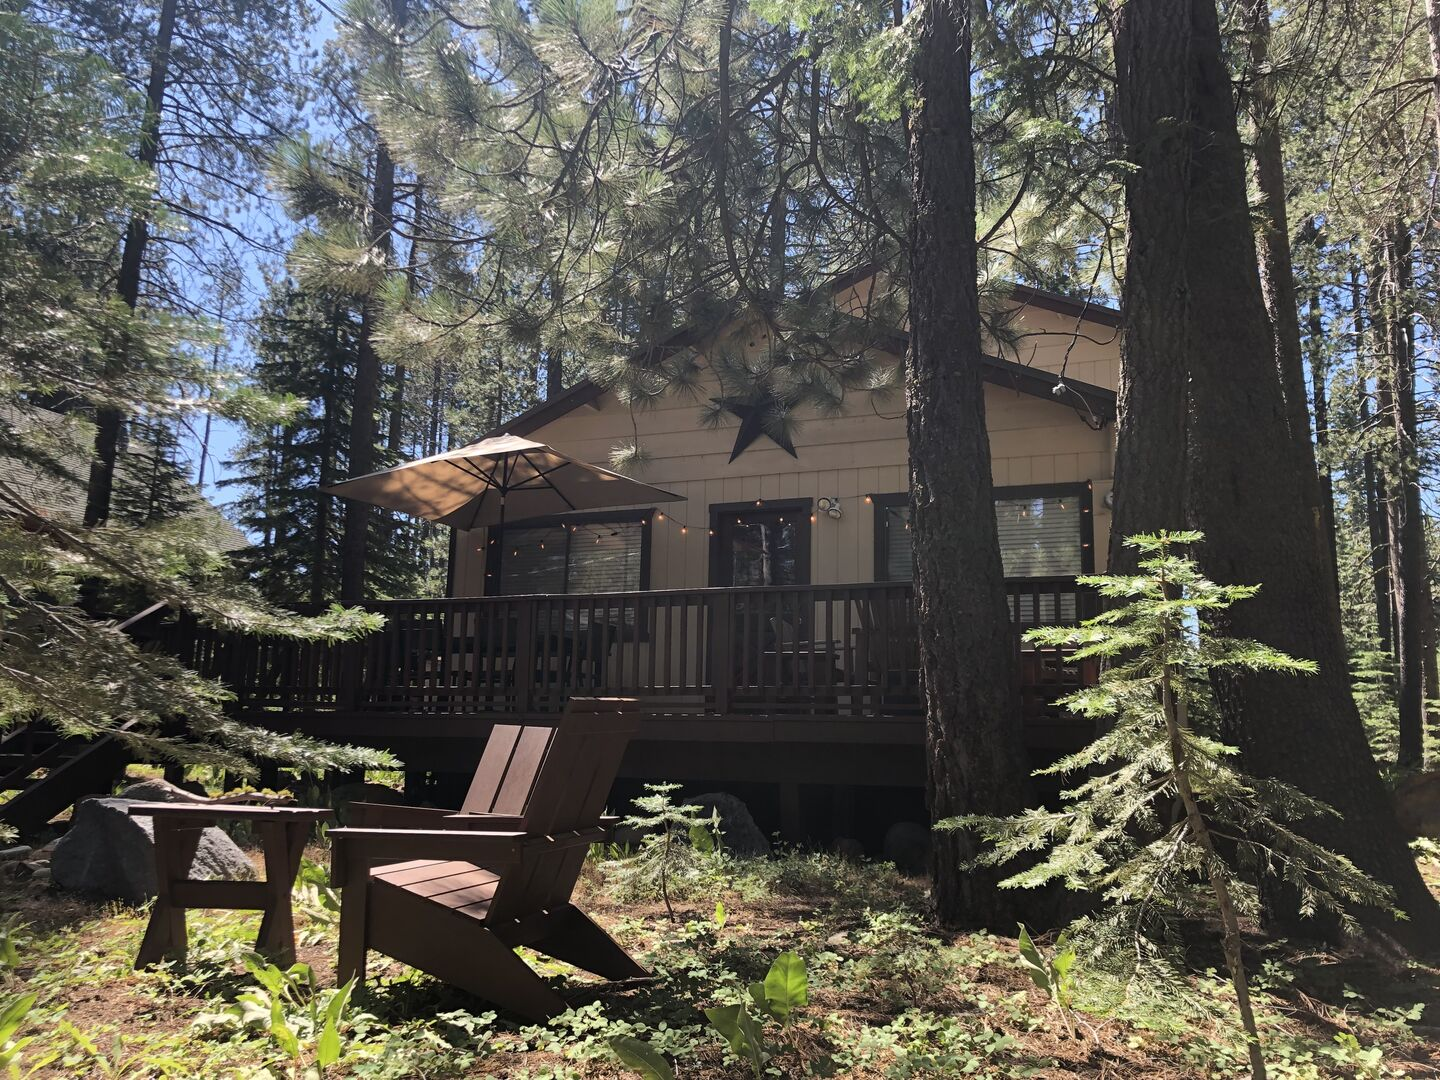 Exterior View of our Camp Howdy Rental Property